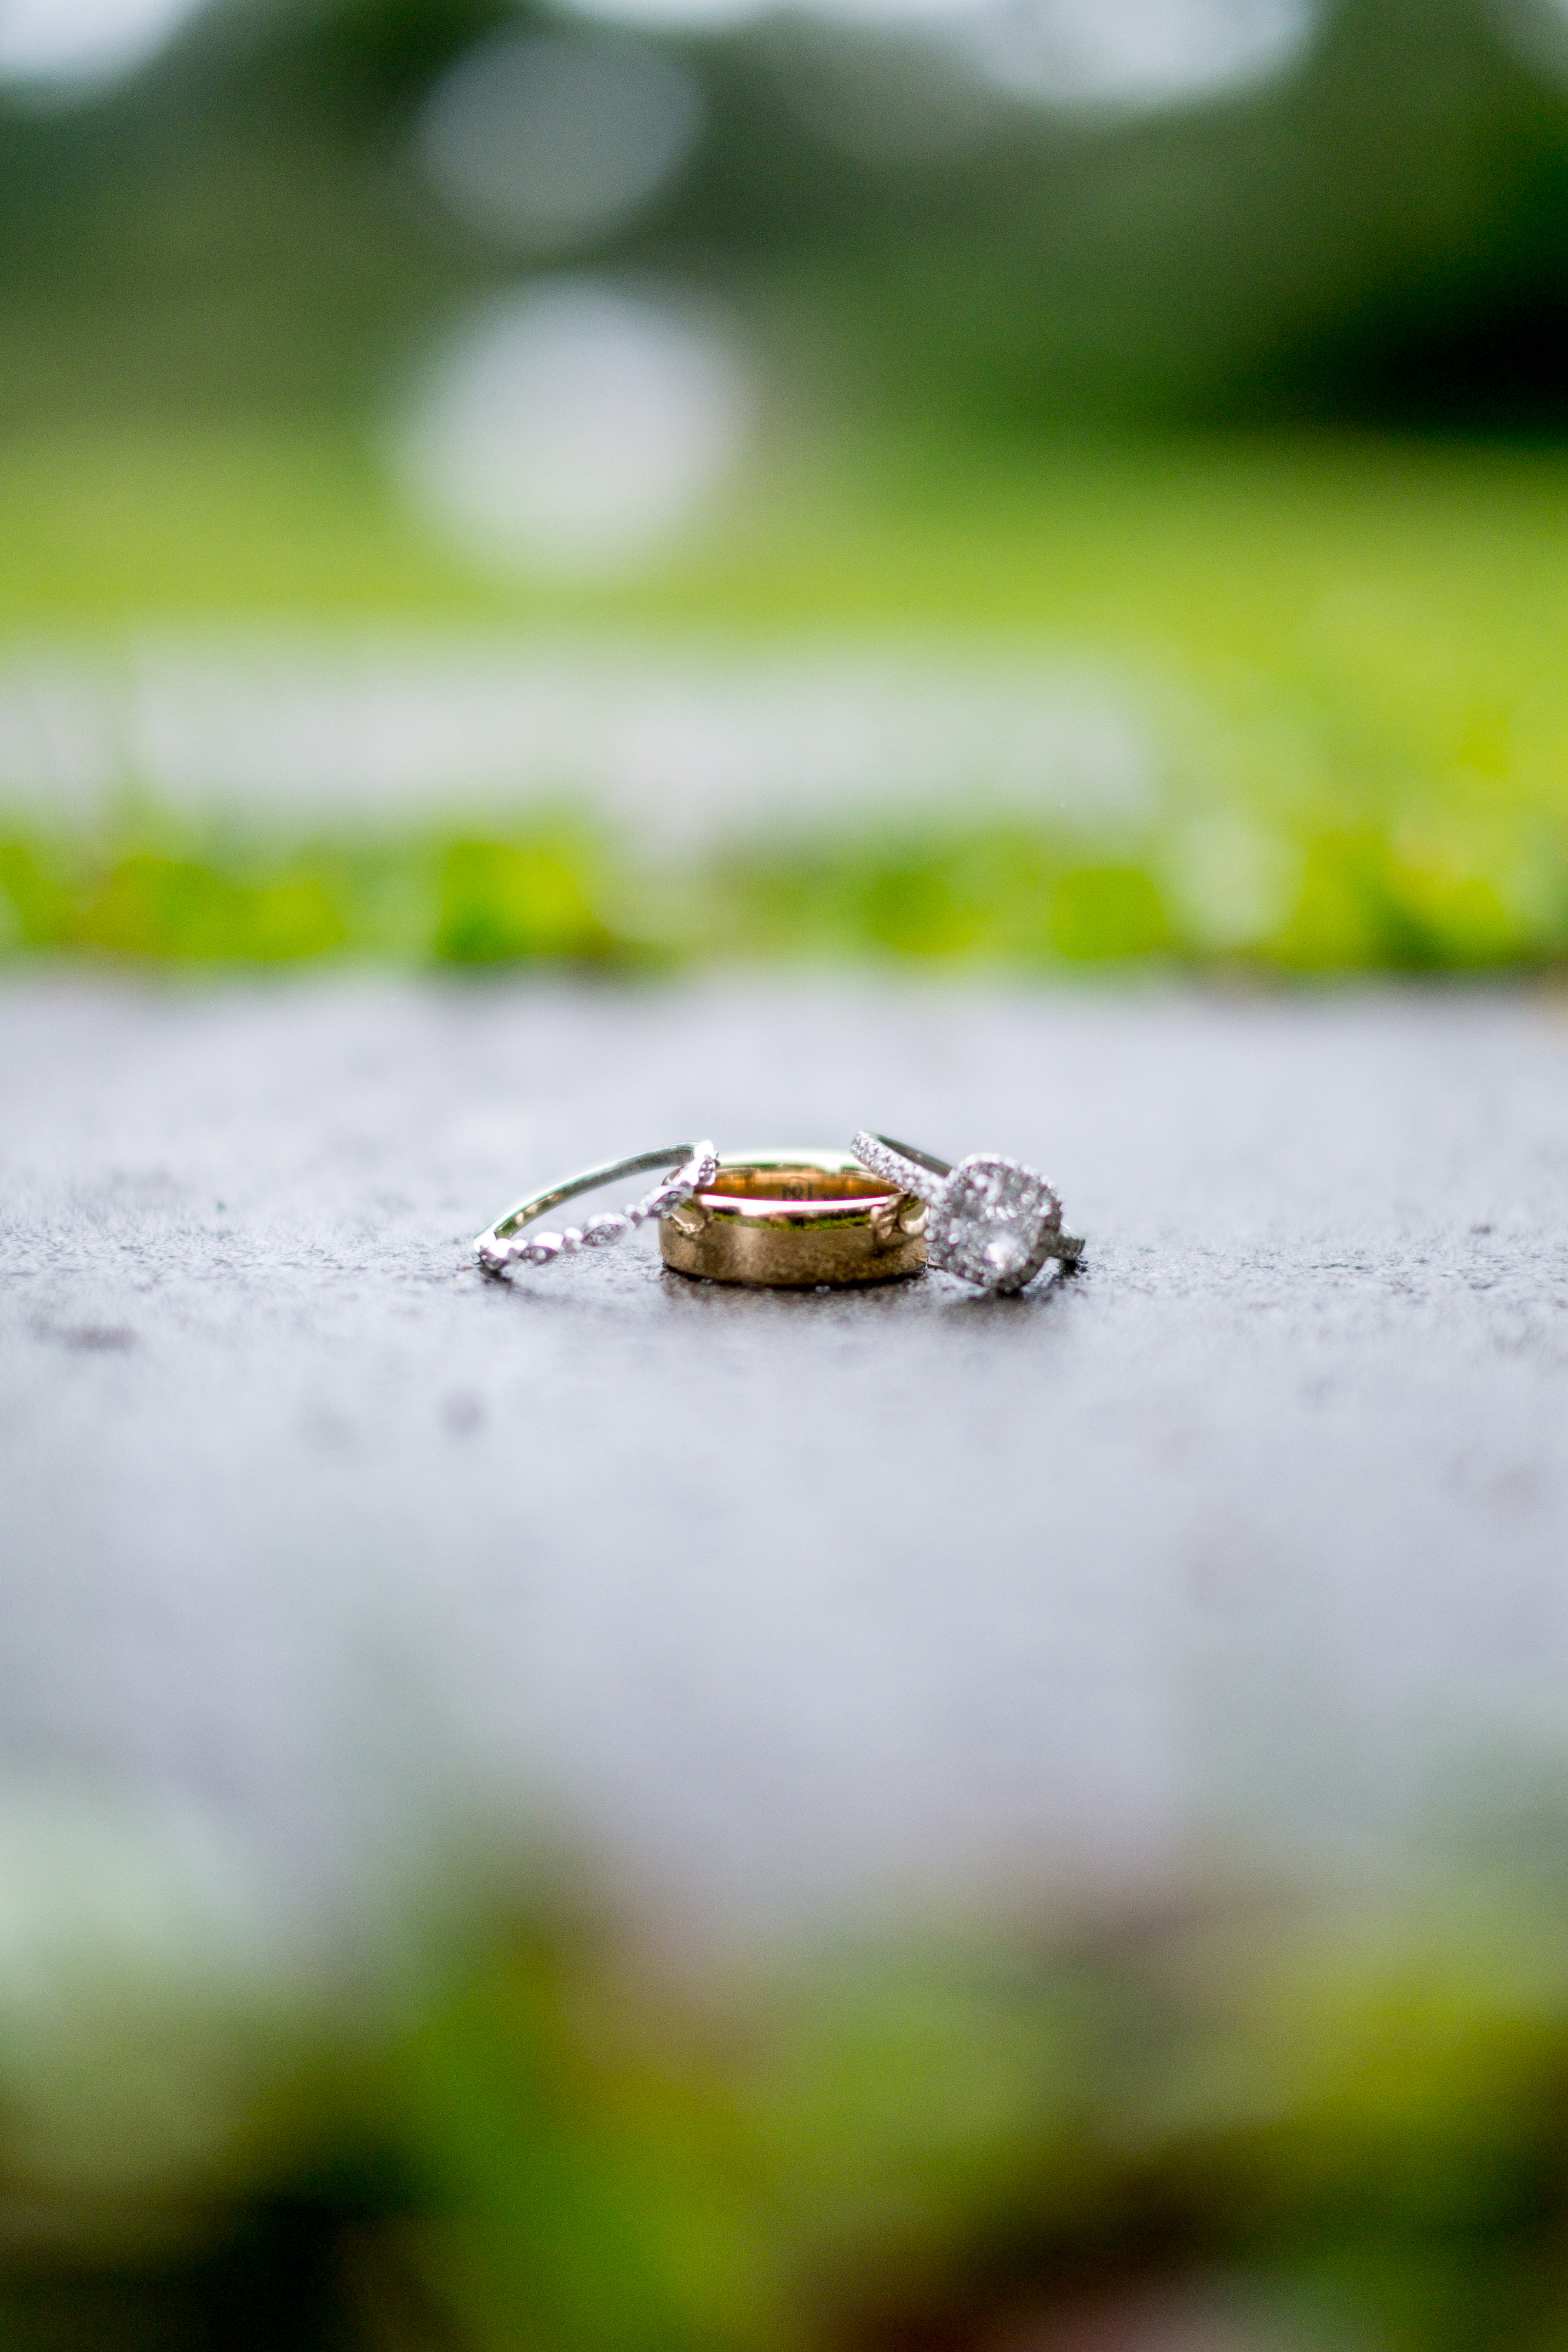 A close shot of the bride and grooms rings, sitting on a stone step, surrounded by the green of wet grass around the stone. Photo taken by Pait Photography, at a wedding at St. James Plantation, in St. James, NC.